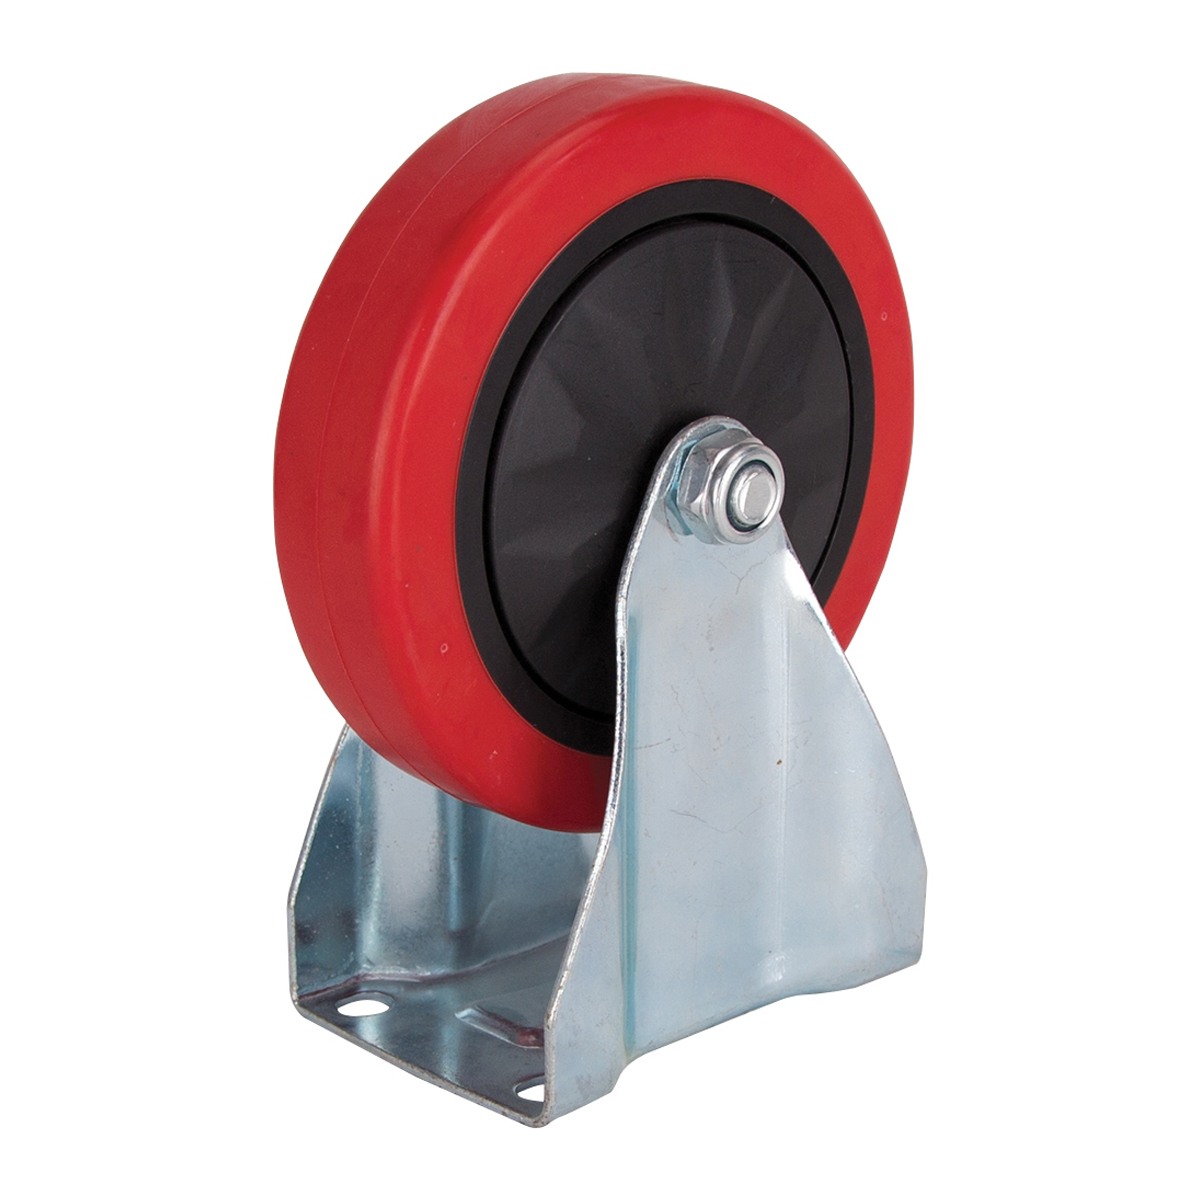 Picture of ProSource JC-382-G Rigid Caster, 5 in Dia Wheel, Polyurethane Wheel, Red, 275 lb, Steel Housing Material